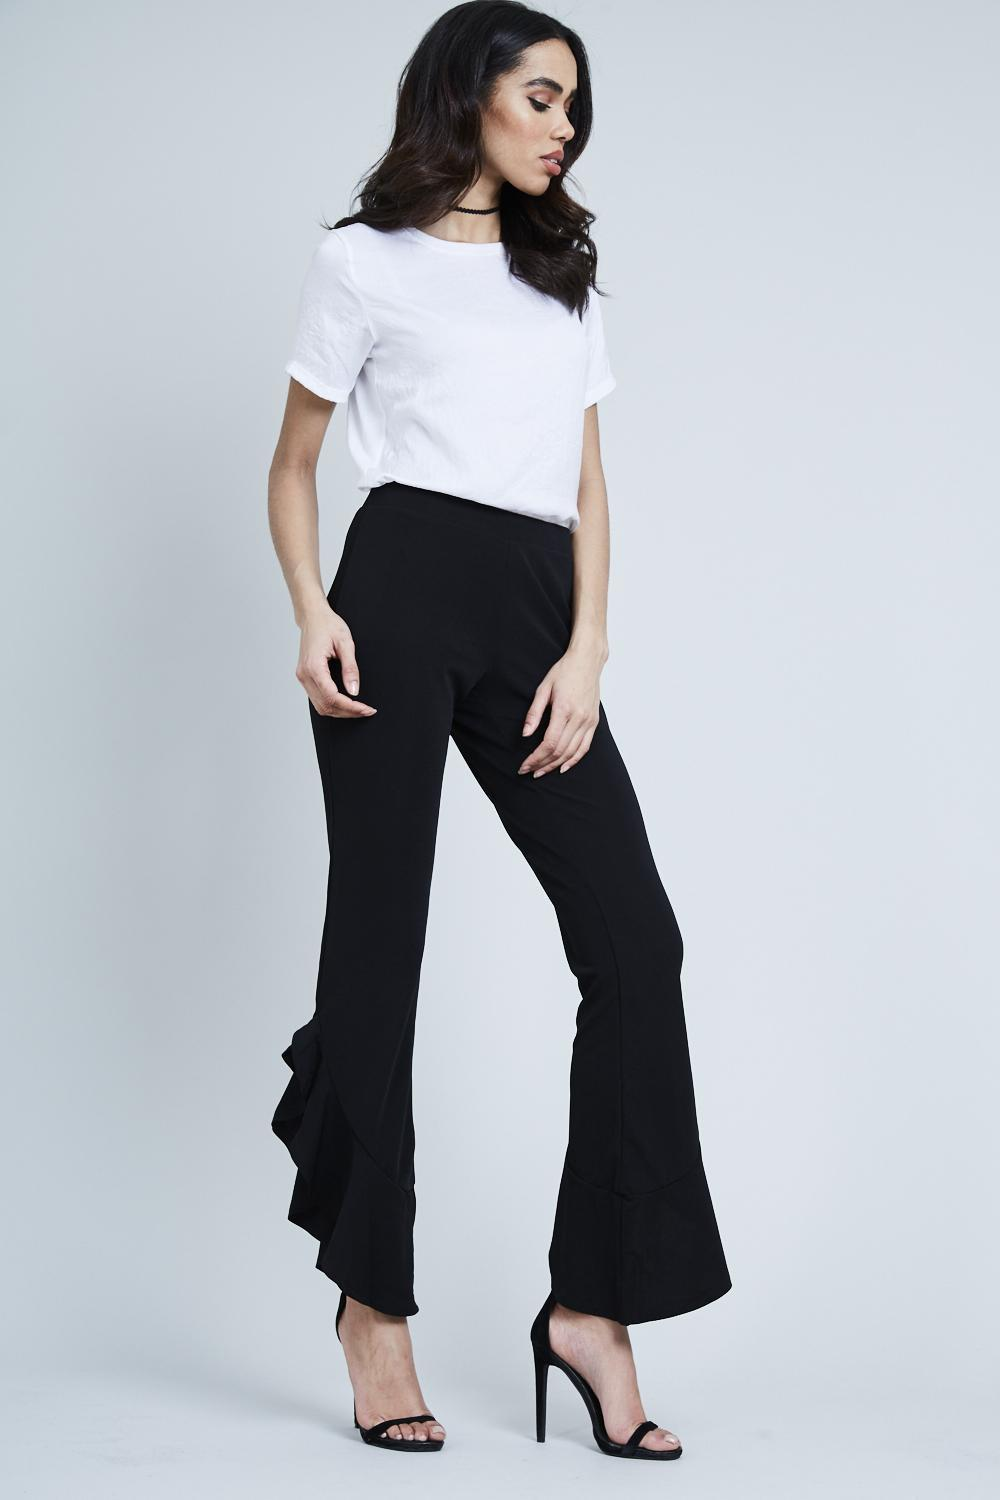 Ruffle Bottom Stretch Trousers